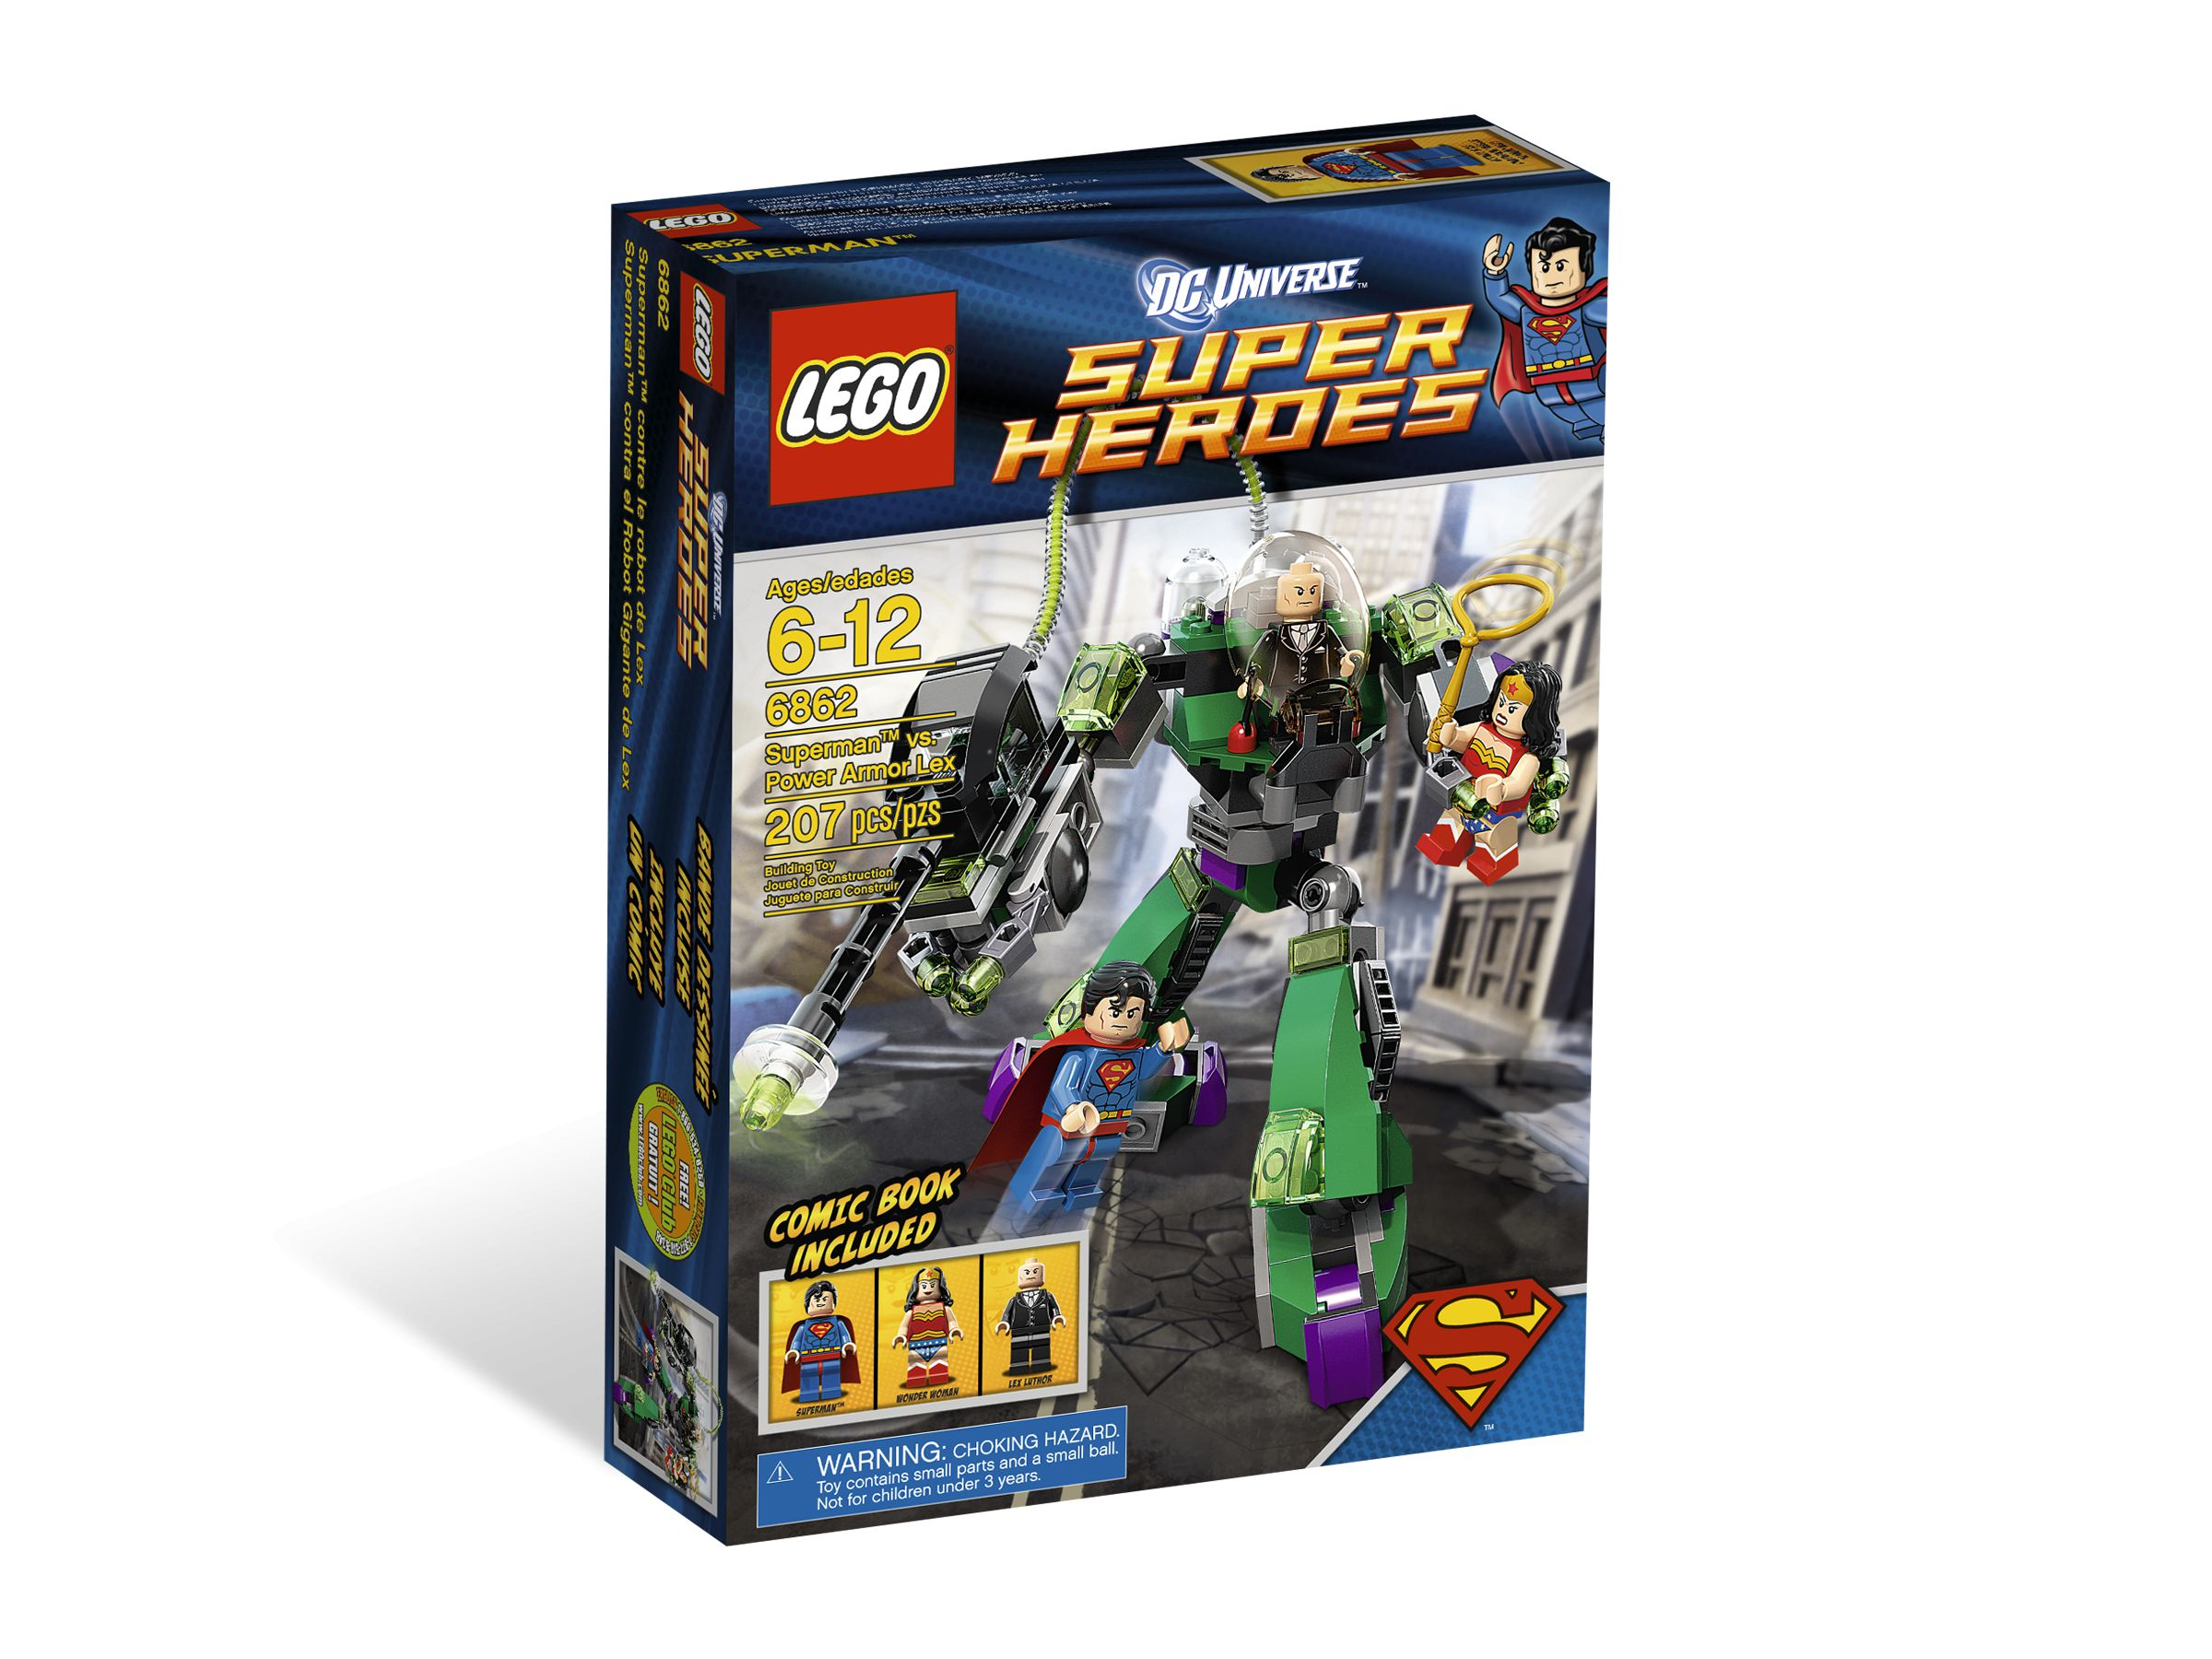 LEGO Super Heroes 6862 Superman Vs Power Armor Lex LEGO_6862_alt1.jpg